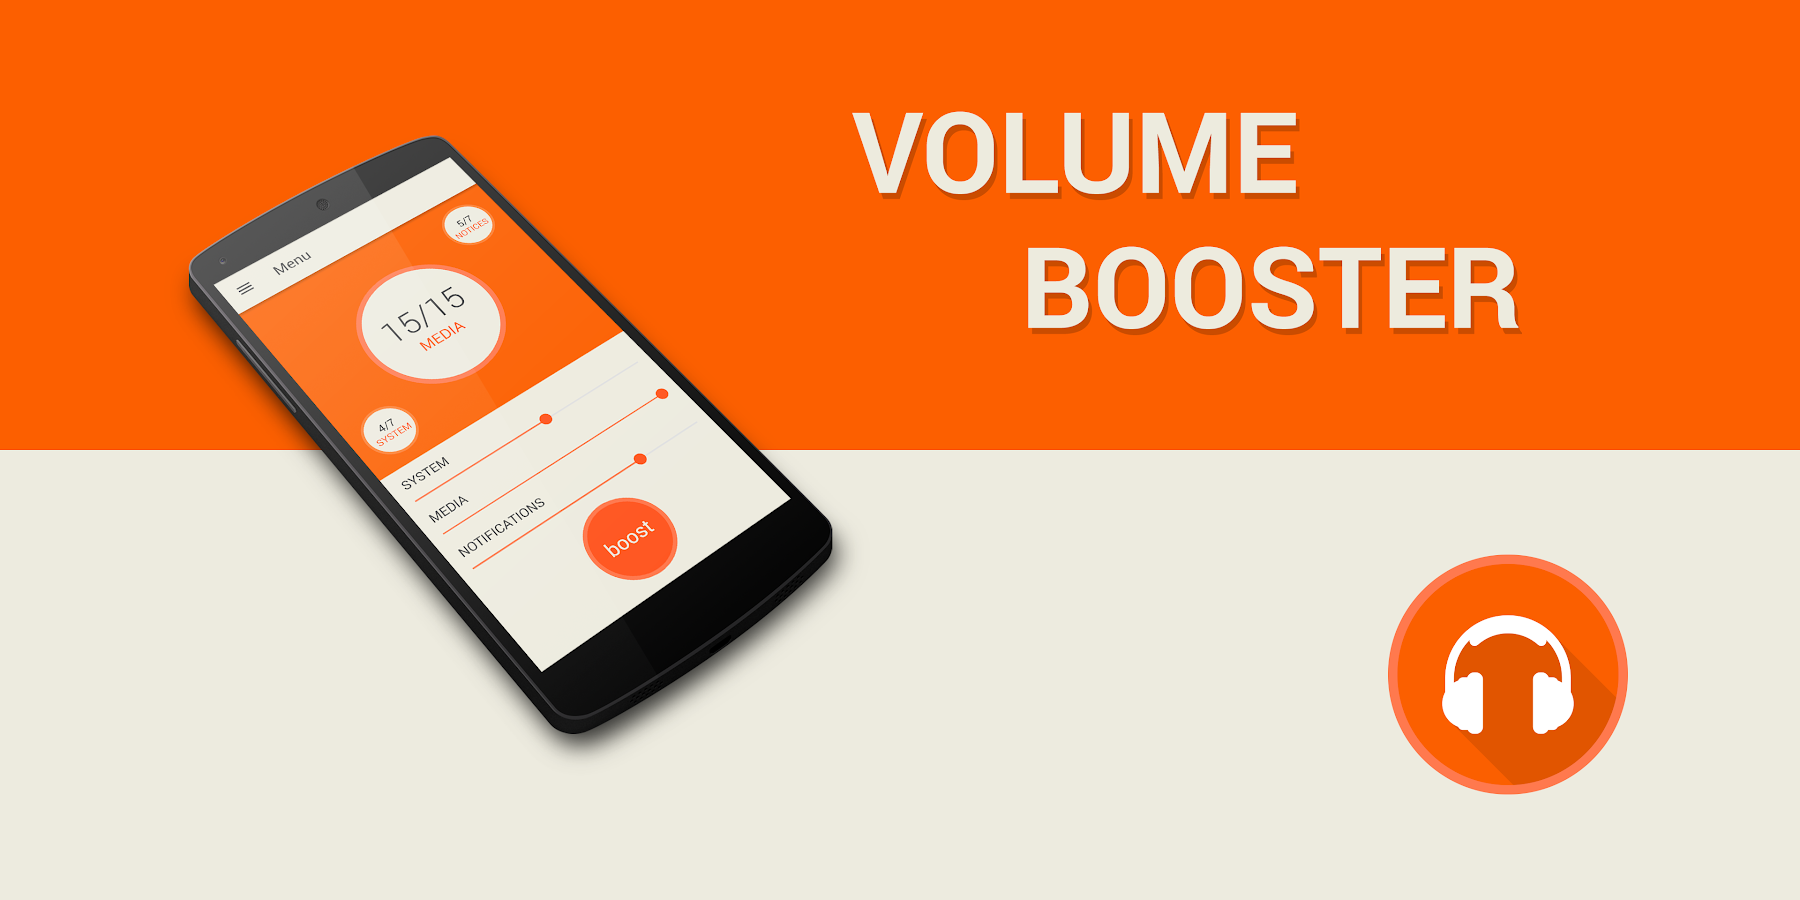 How To Increase / Boost the Volume of Any Android SmartPhone   Drippler - Apps, Games, News, Updates & Accessories